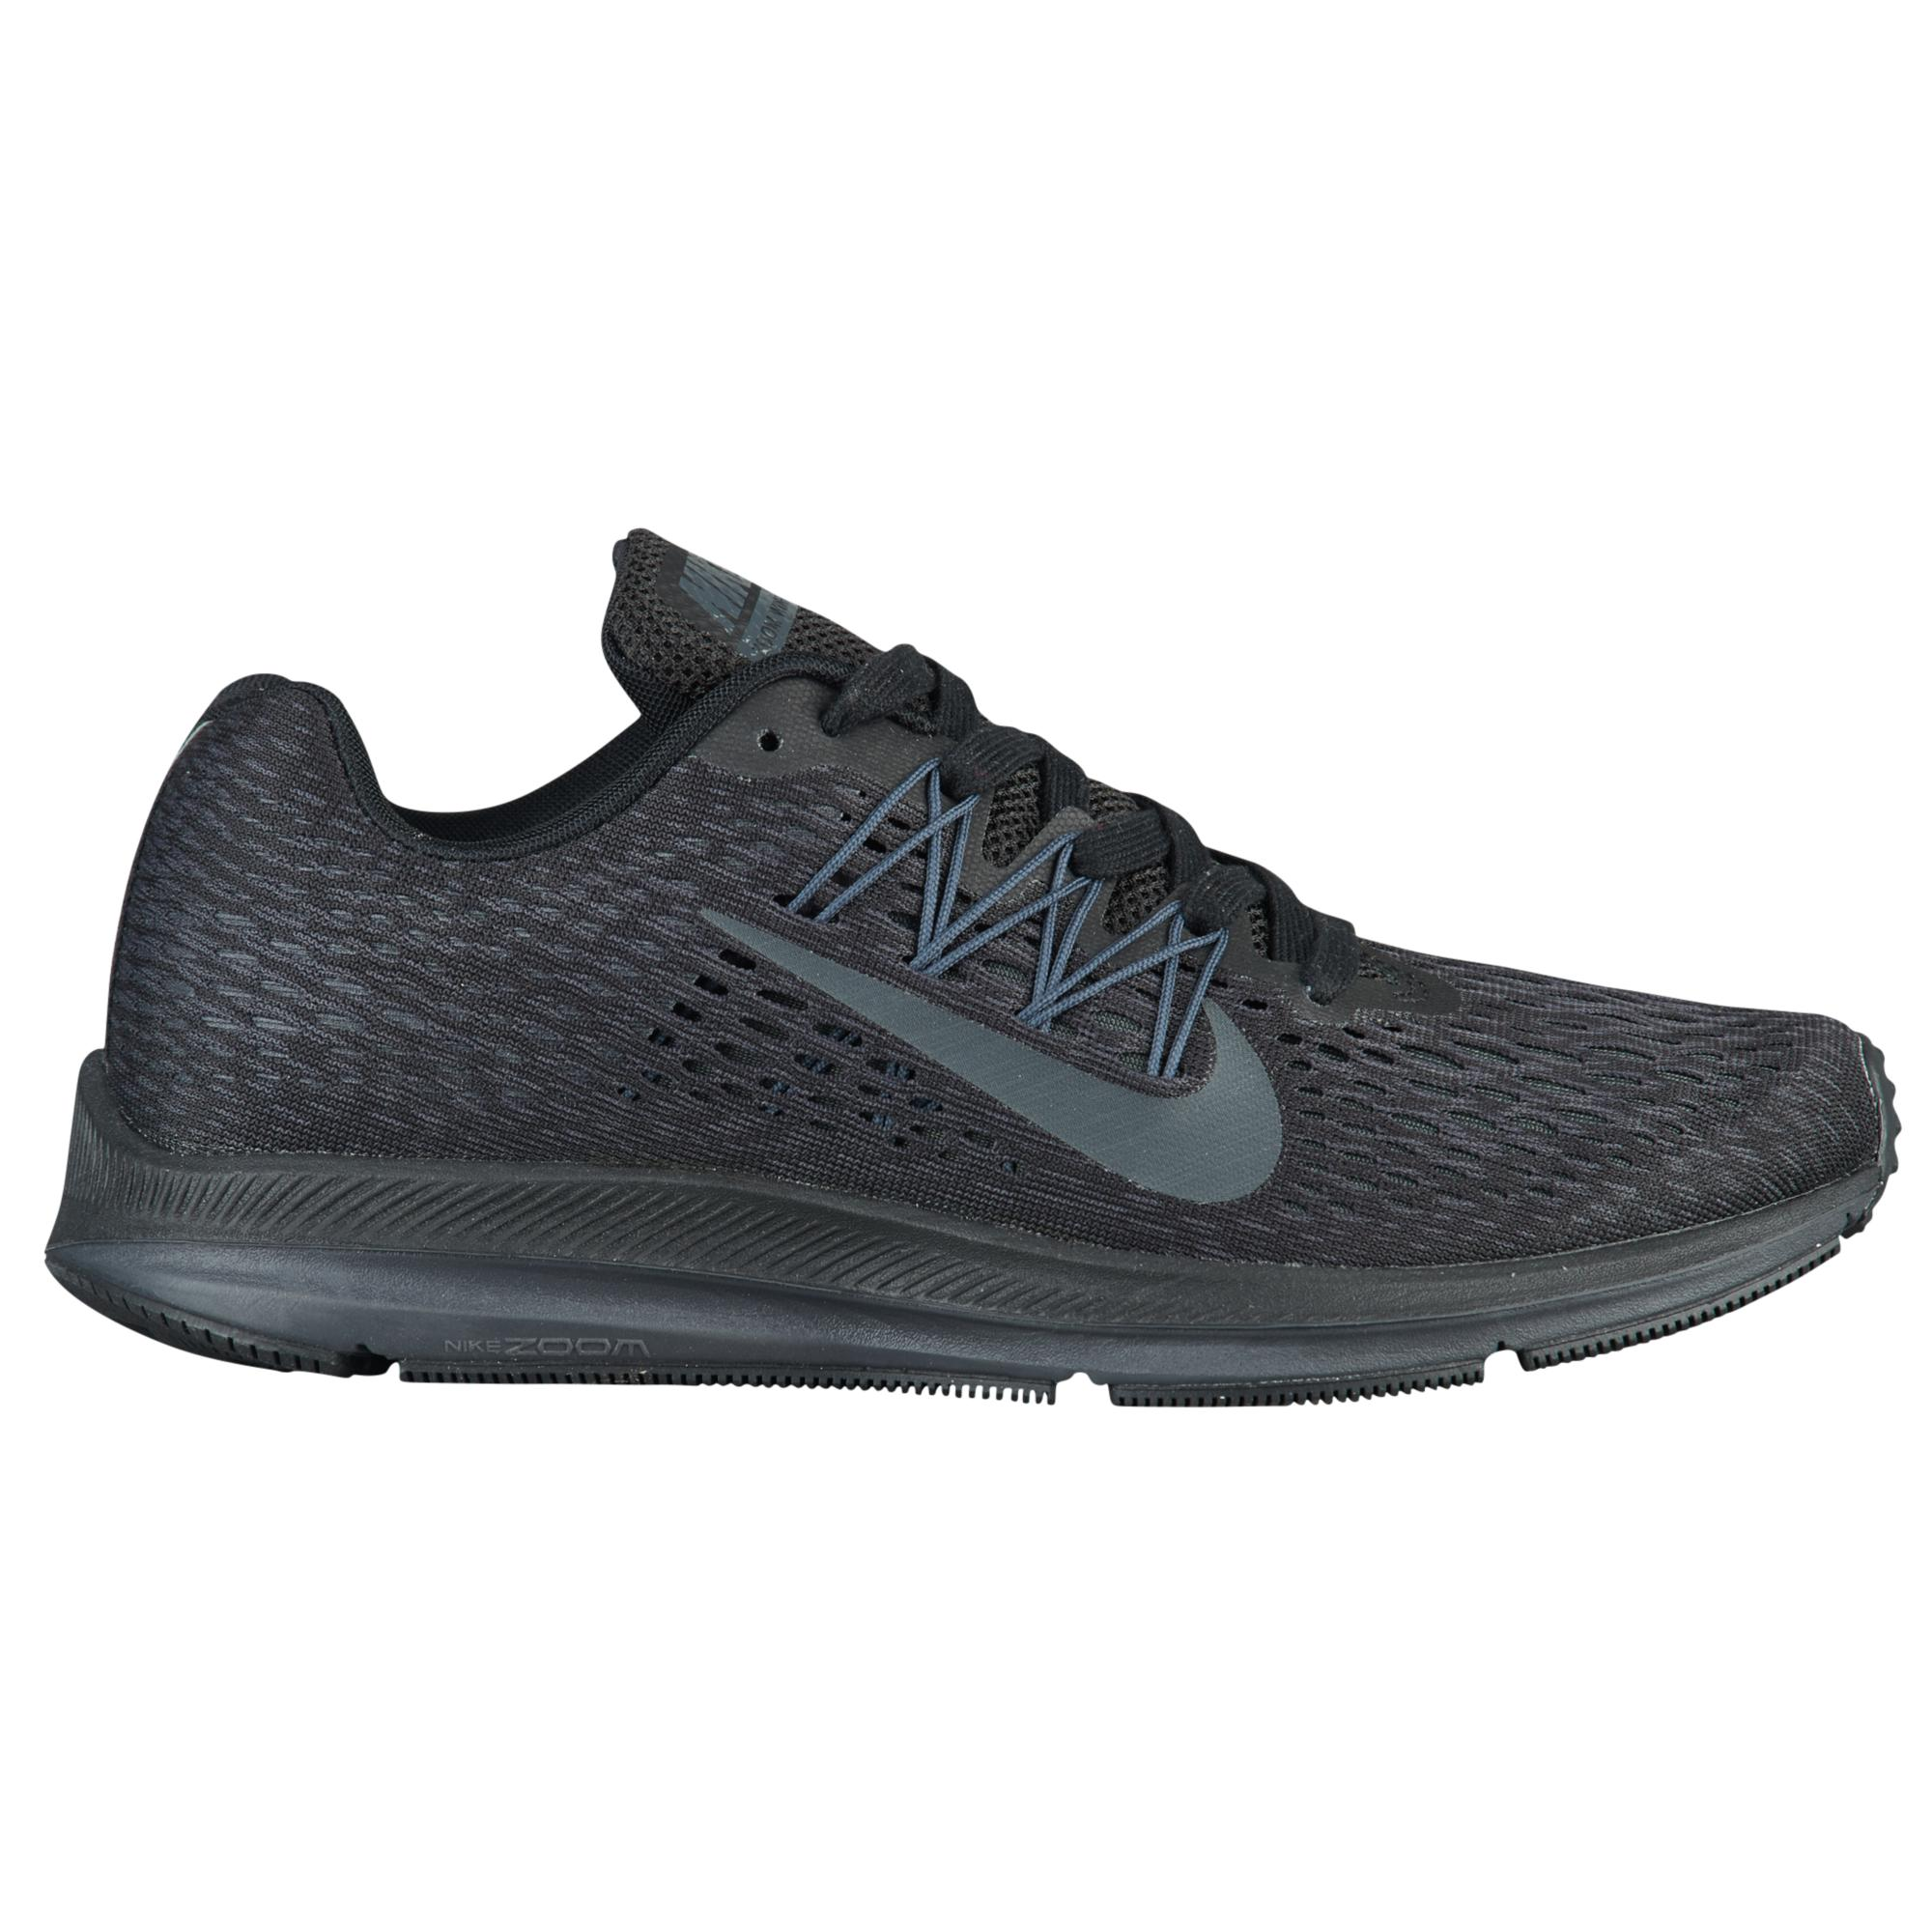 d270cacd2151 Lyst - Nike Zoom Winflo 5 for Men